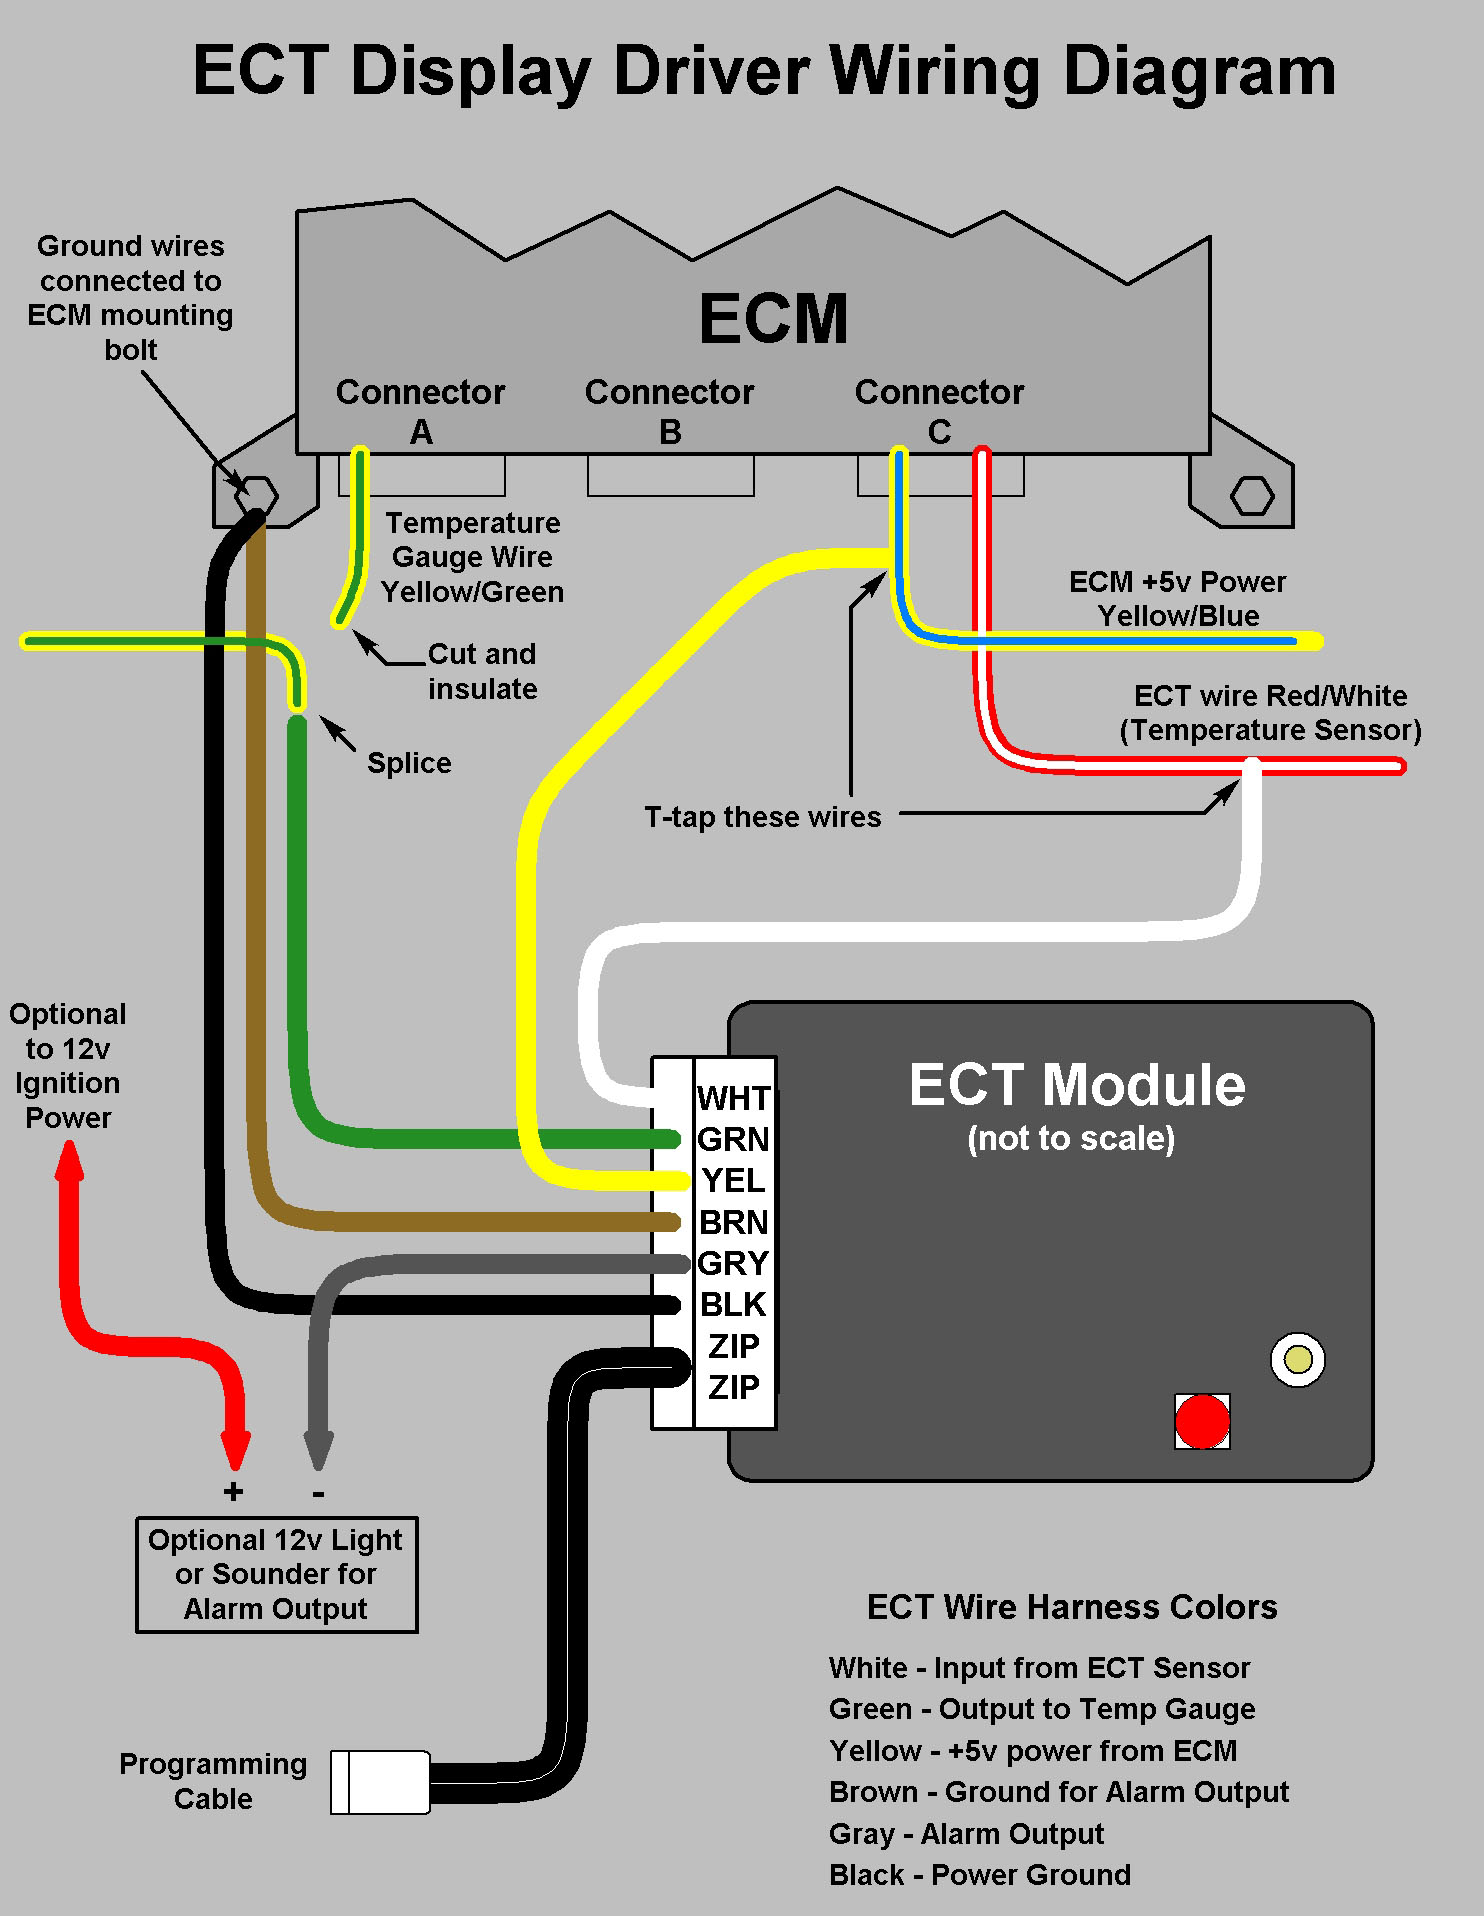 ECT wiring diagram aem ems 4 wiring diagram aem ems fox body mustangs \u2022 free wiring ems stinger wiring diagram at bayanpartner.co